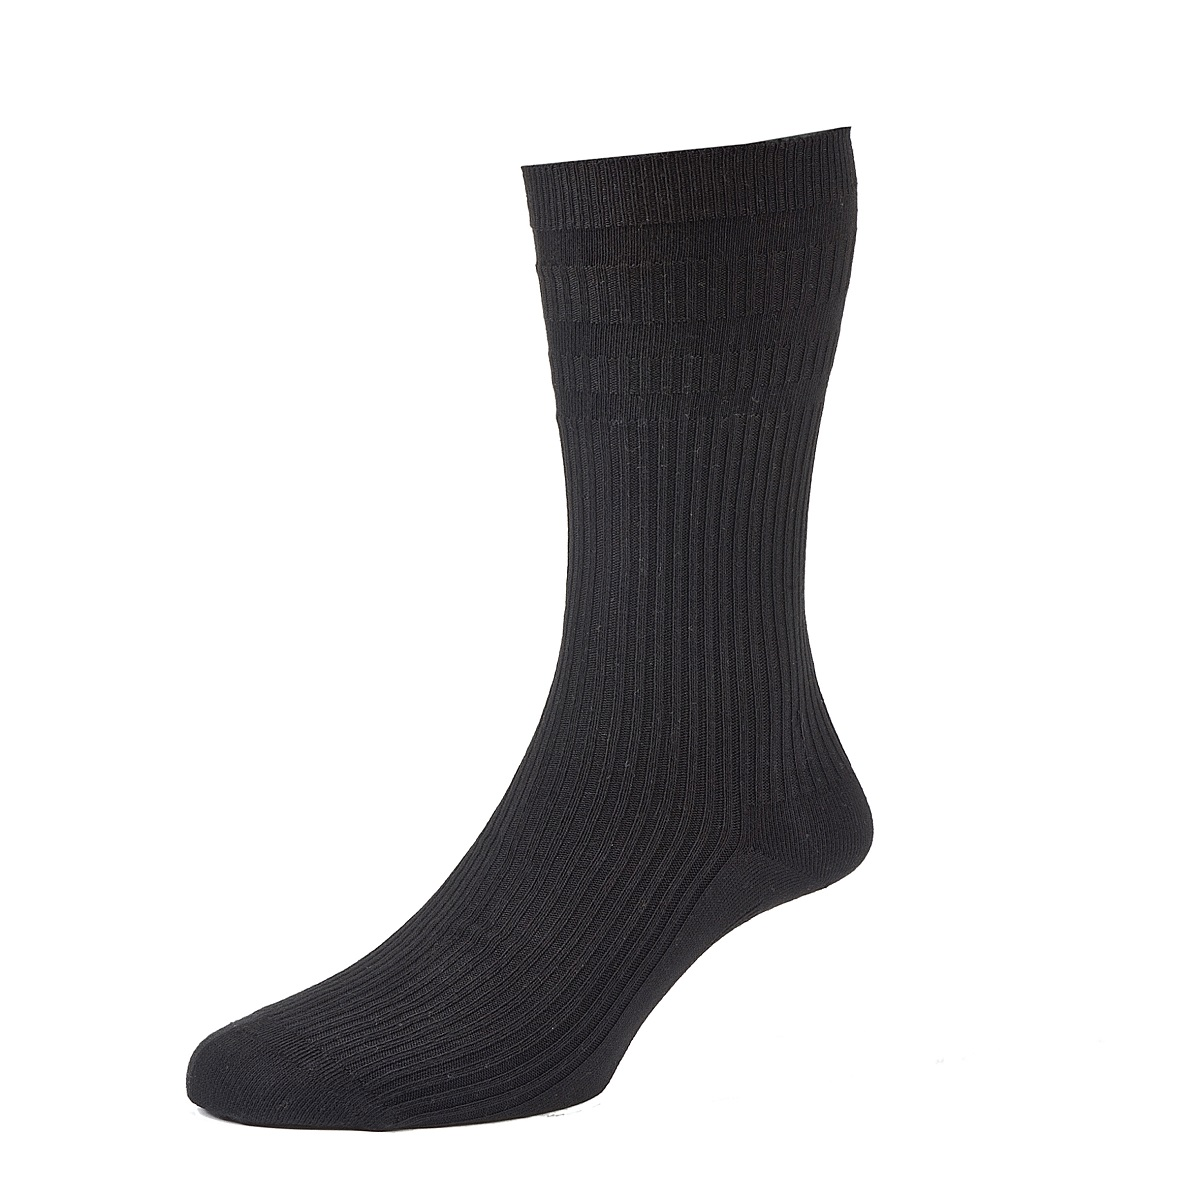 HJ Hall Softop Mens Cotton Socks size 11-13  Black HJ91